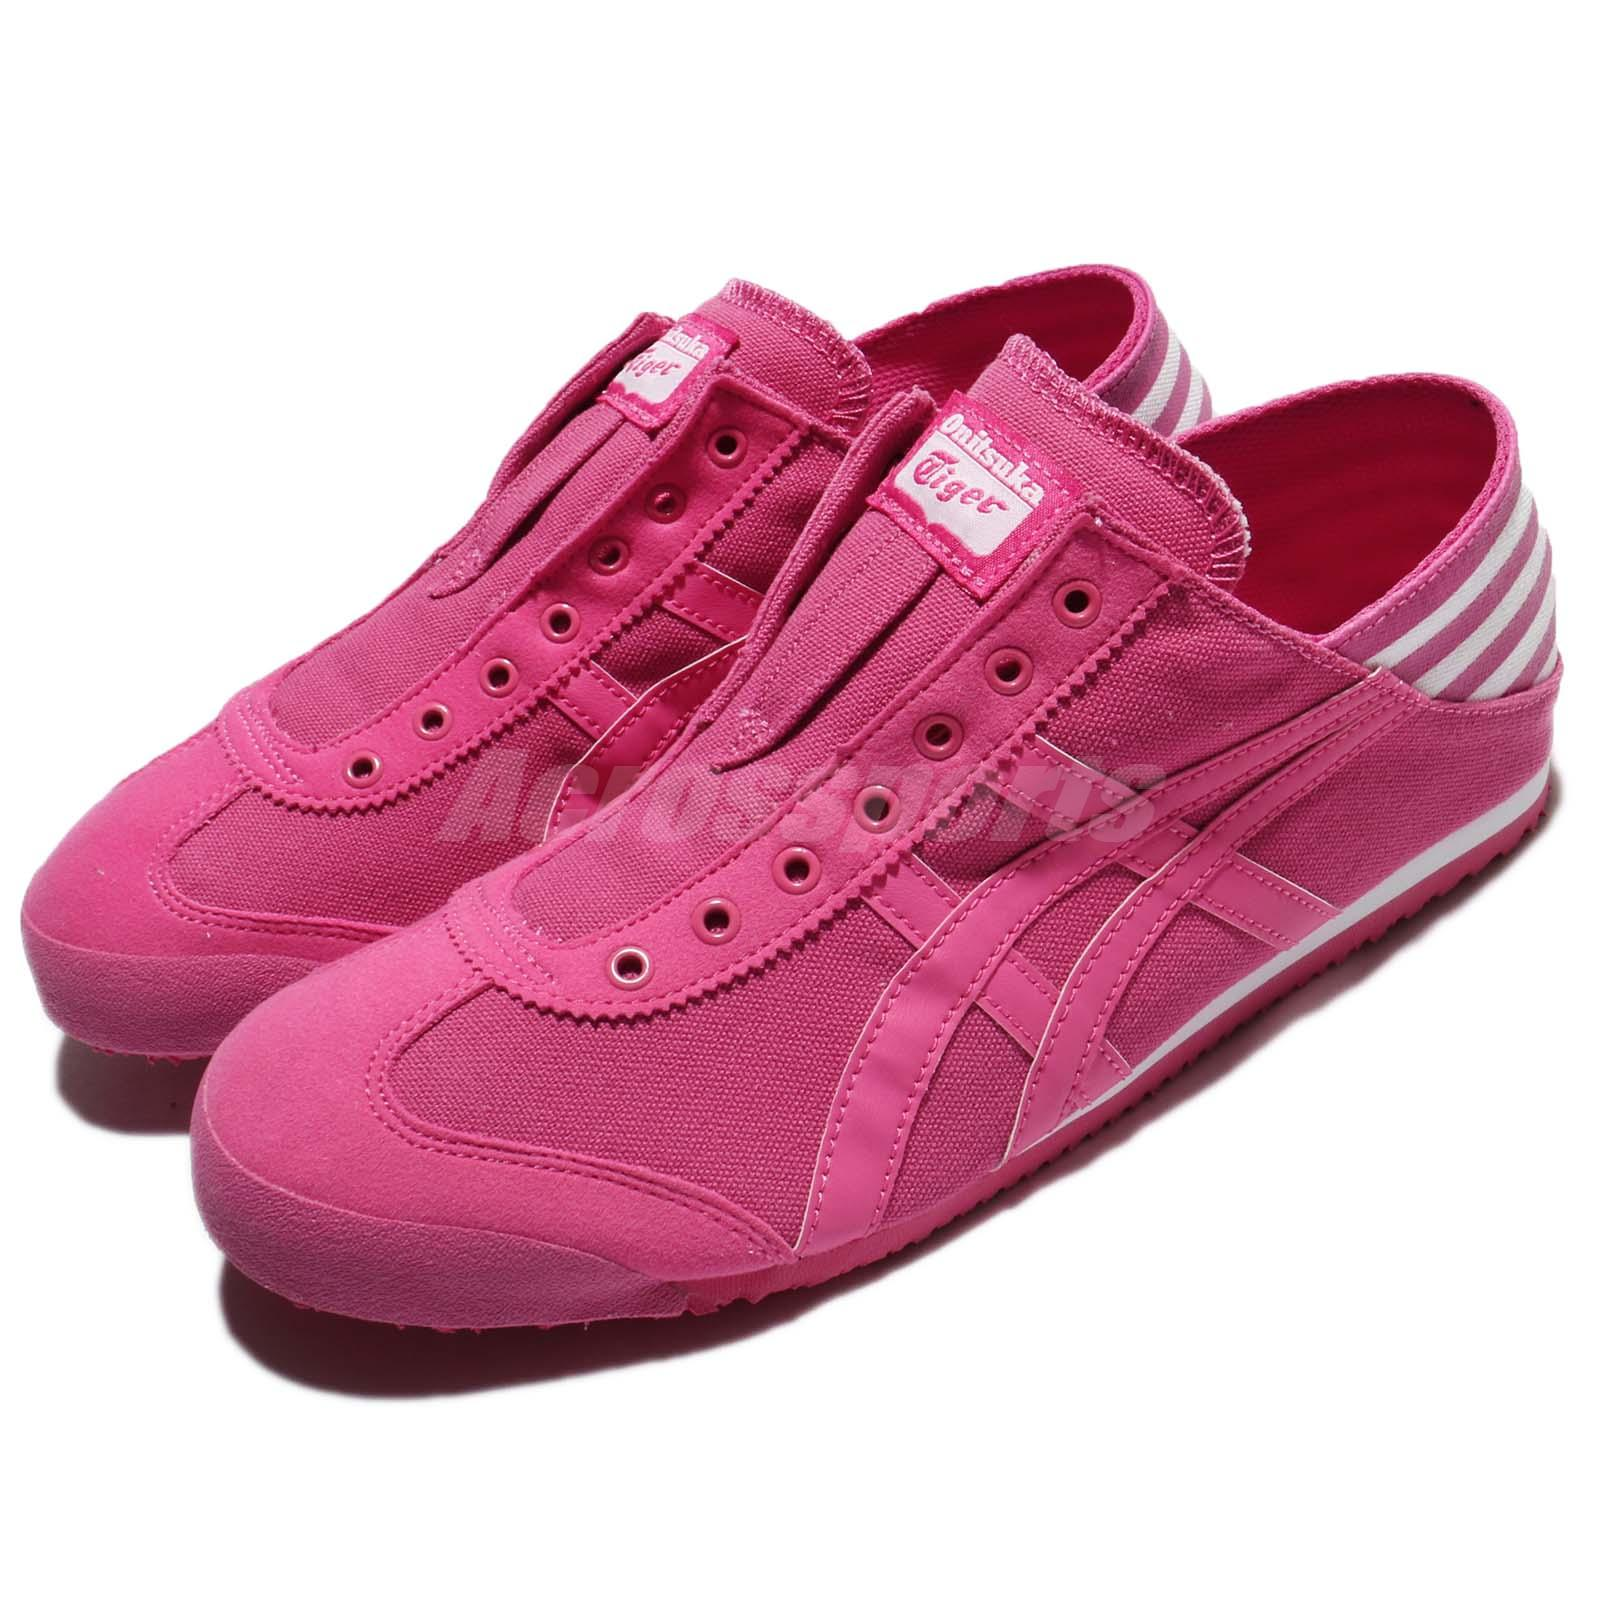 7316cfb0c9 Details about Asics Onitsuka Tiger Mexico 66 Paraty Laceless Pink Canvas  Men Women TH5J4Q-1919